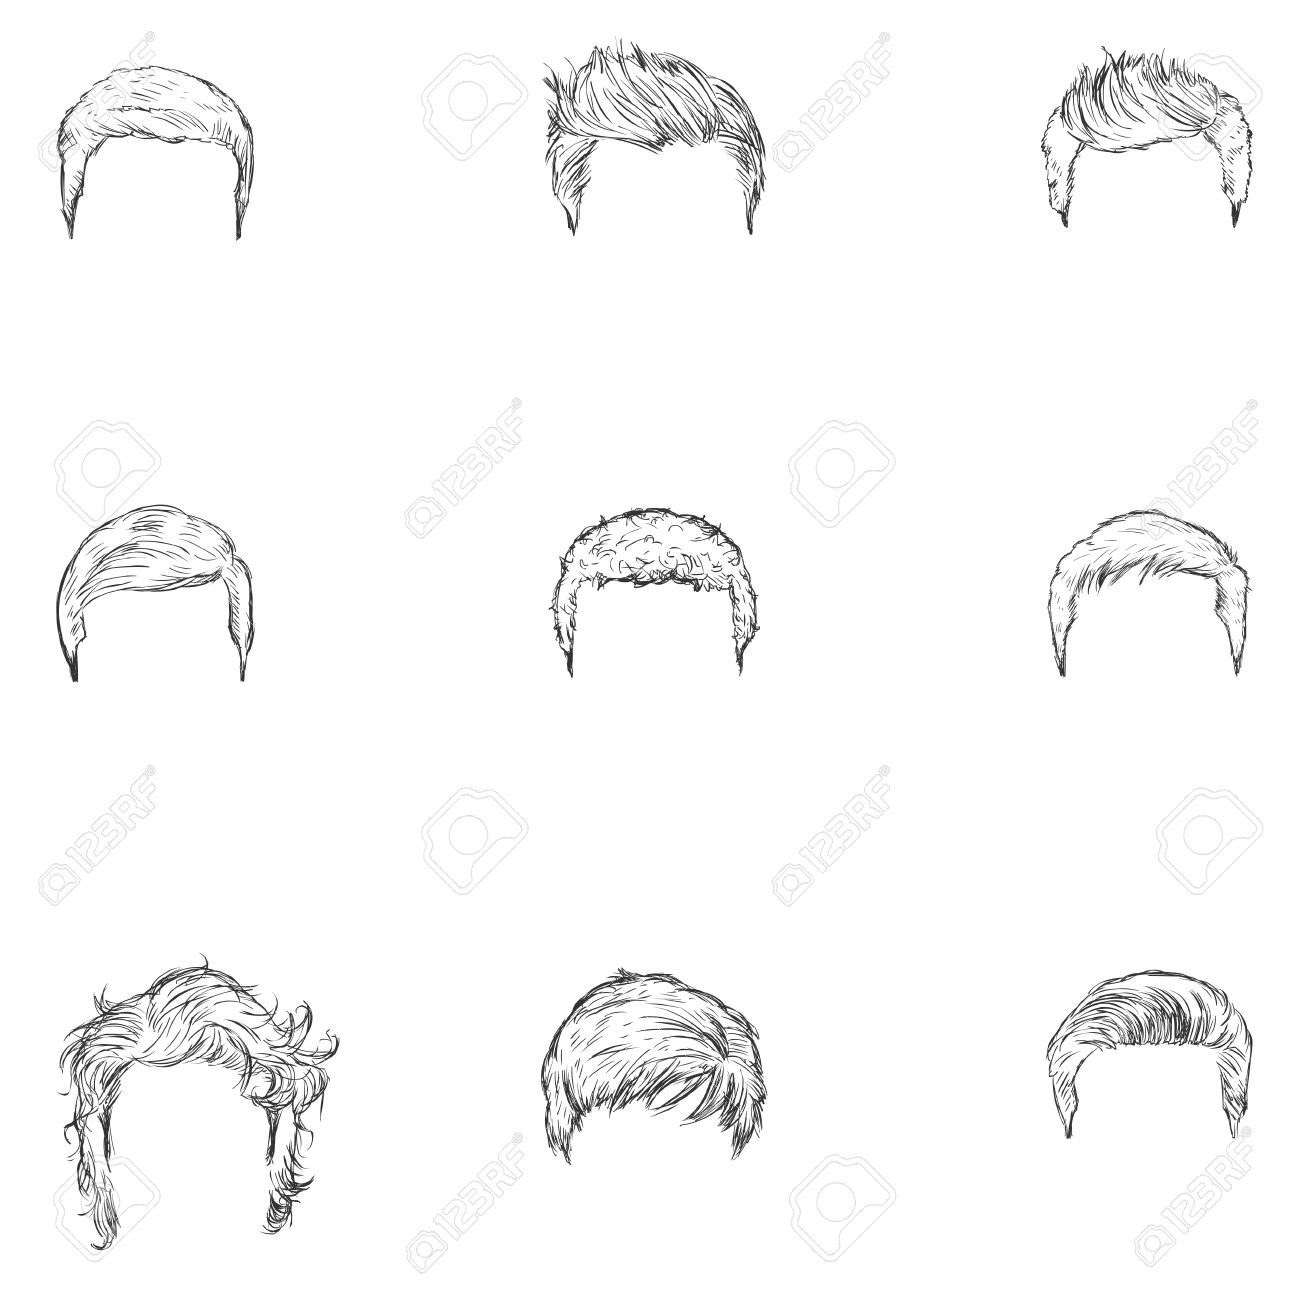 Vector vector set of sketch mens hairstyles on white background